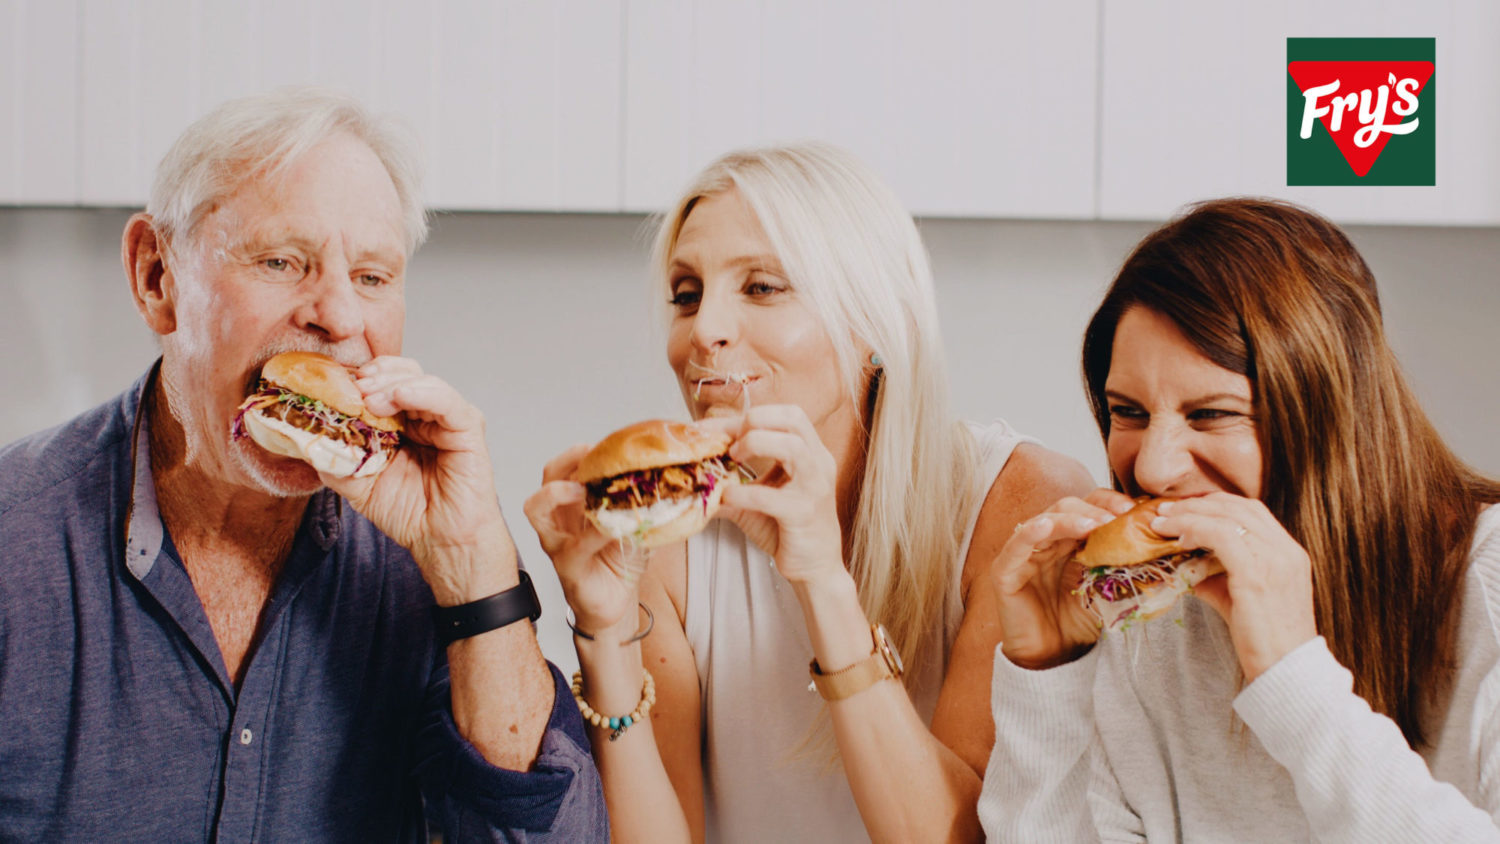 Fry's Family Food: 30-Year-Old Vegan Meat Brand Finally in the U.S.